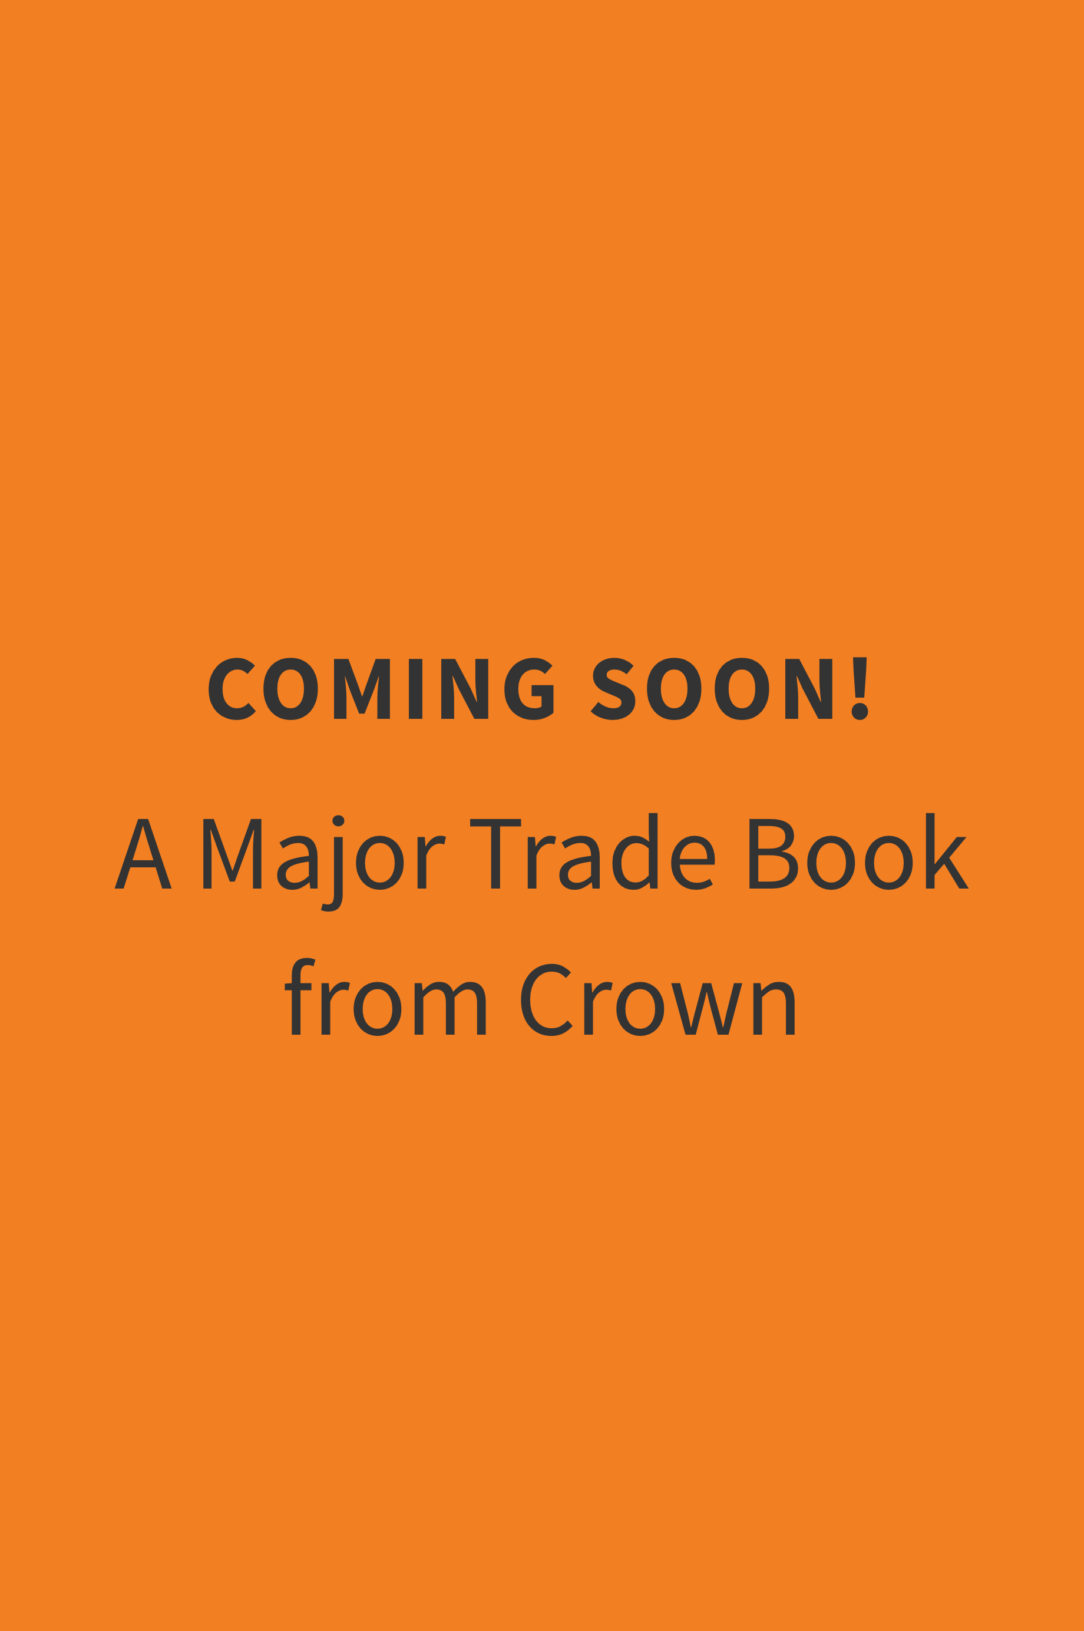 Coming Sooon! A Major Trade Book from Crown